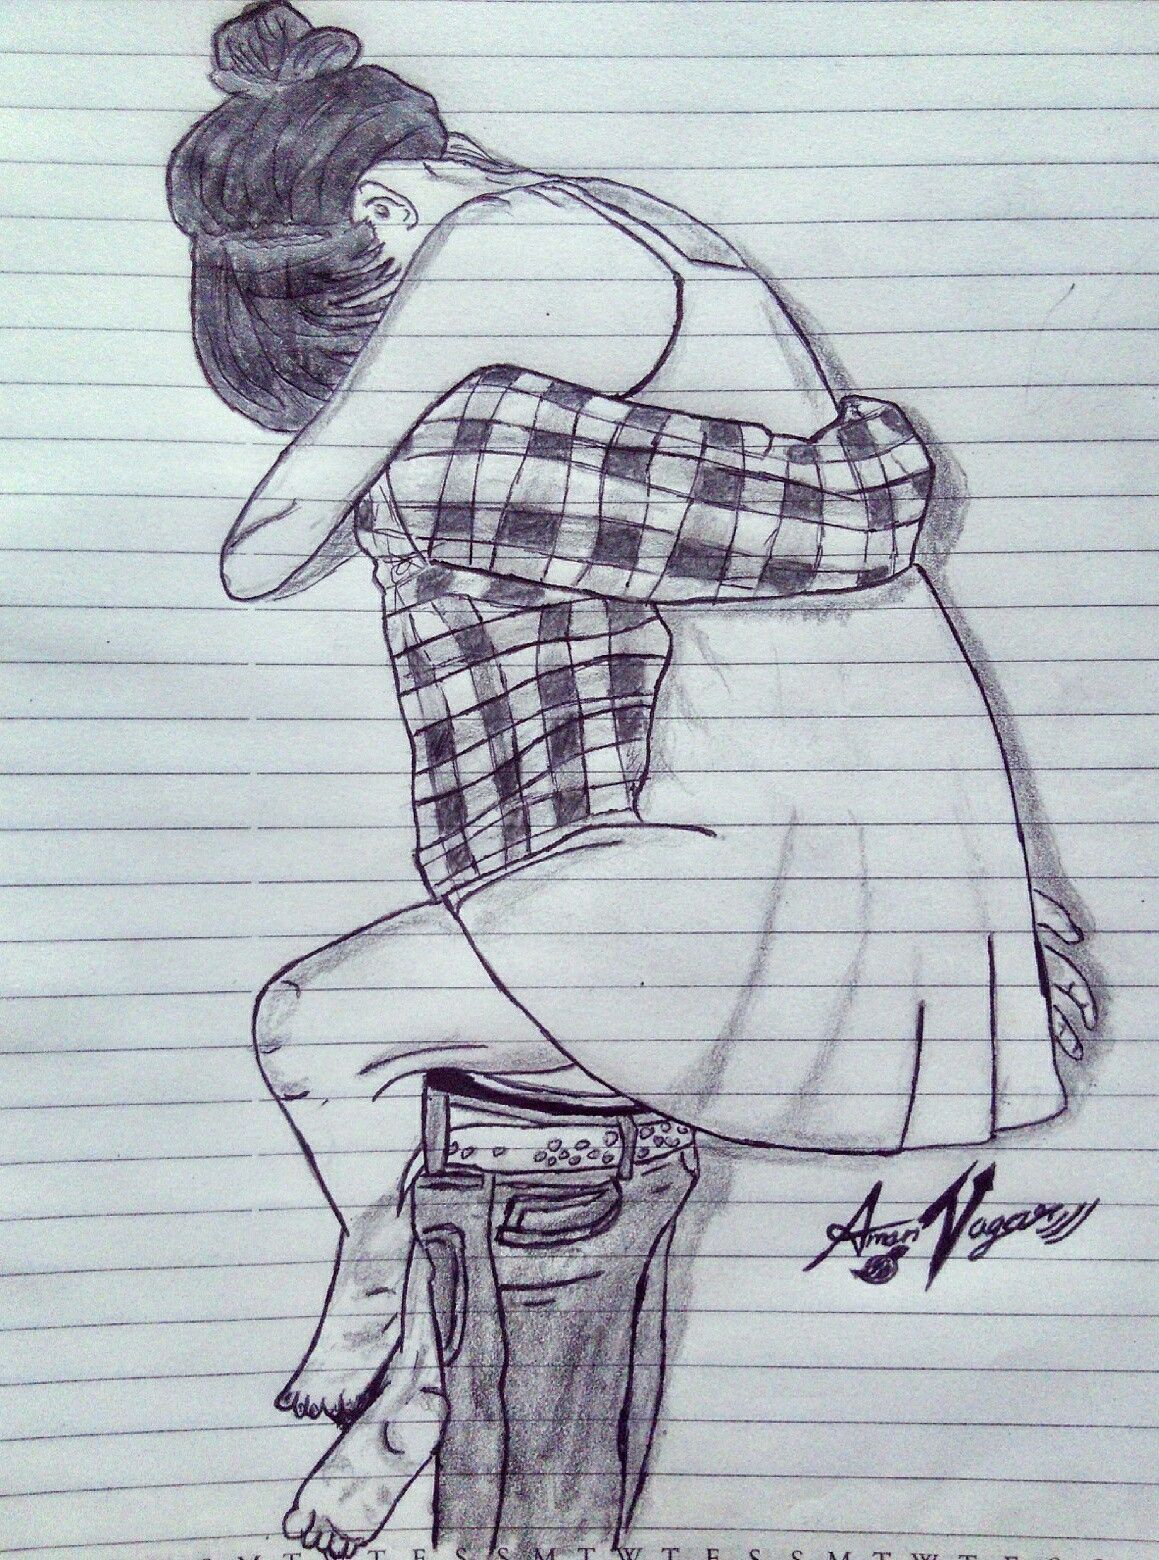 Insta amannagar artist couples goal sketch couple time love sketch couples sketch hug sketch couples cute romantic sketch couples loving sketch couple hug